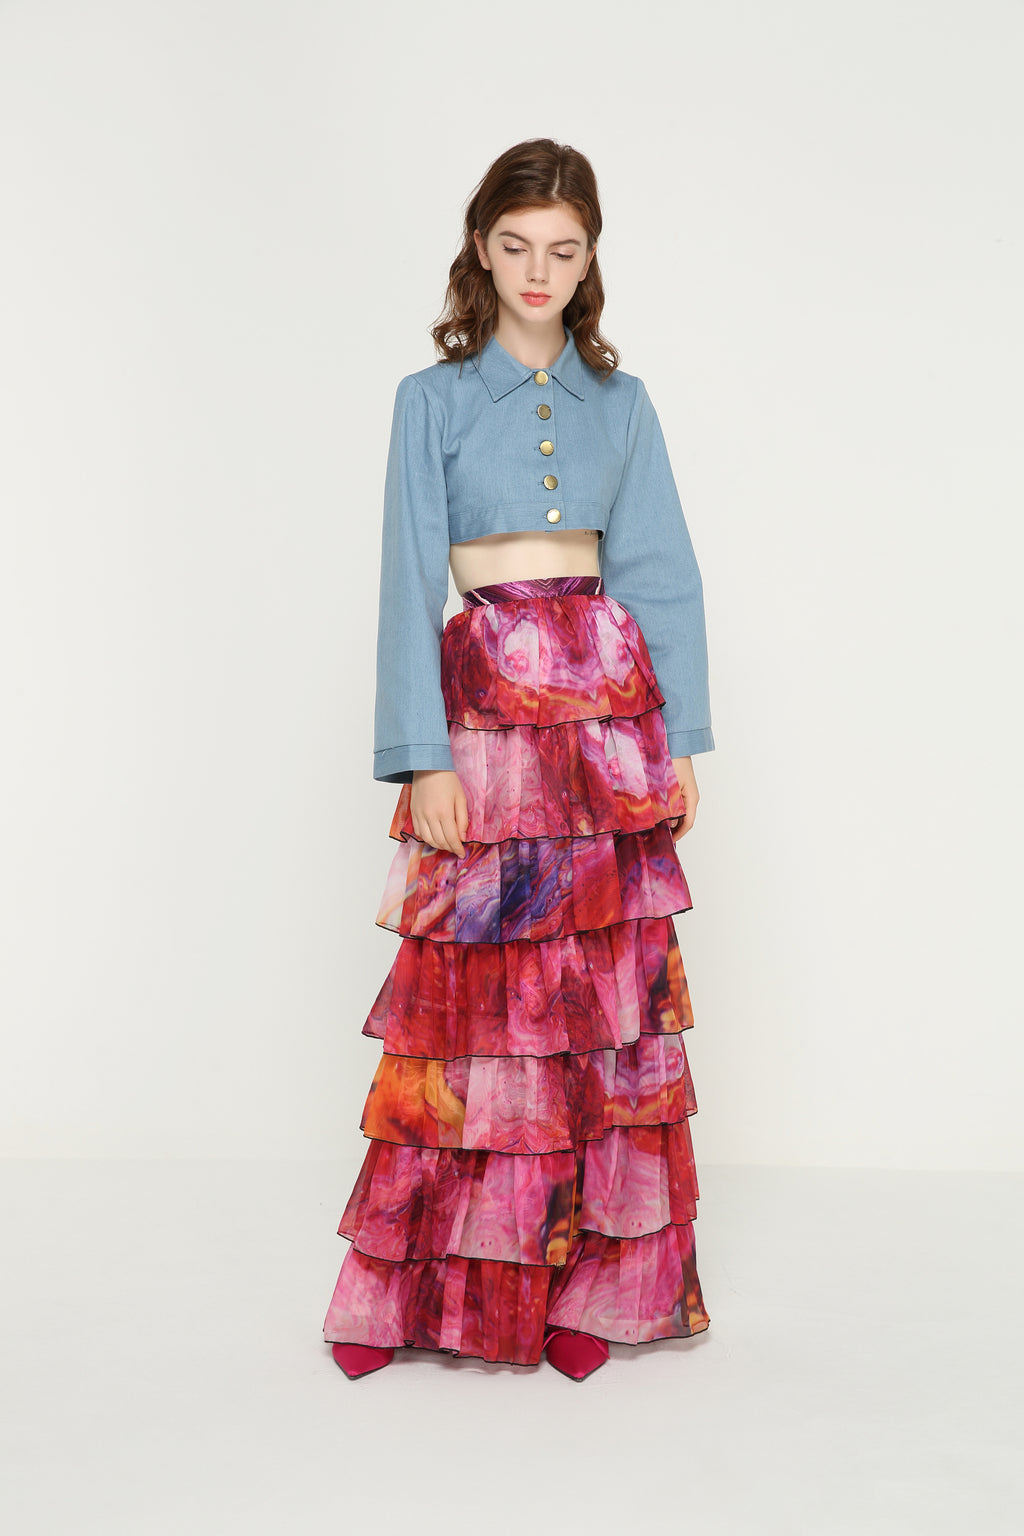 SARAH I Like You Chiffon Ruffles Skirt